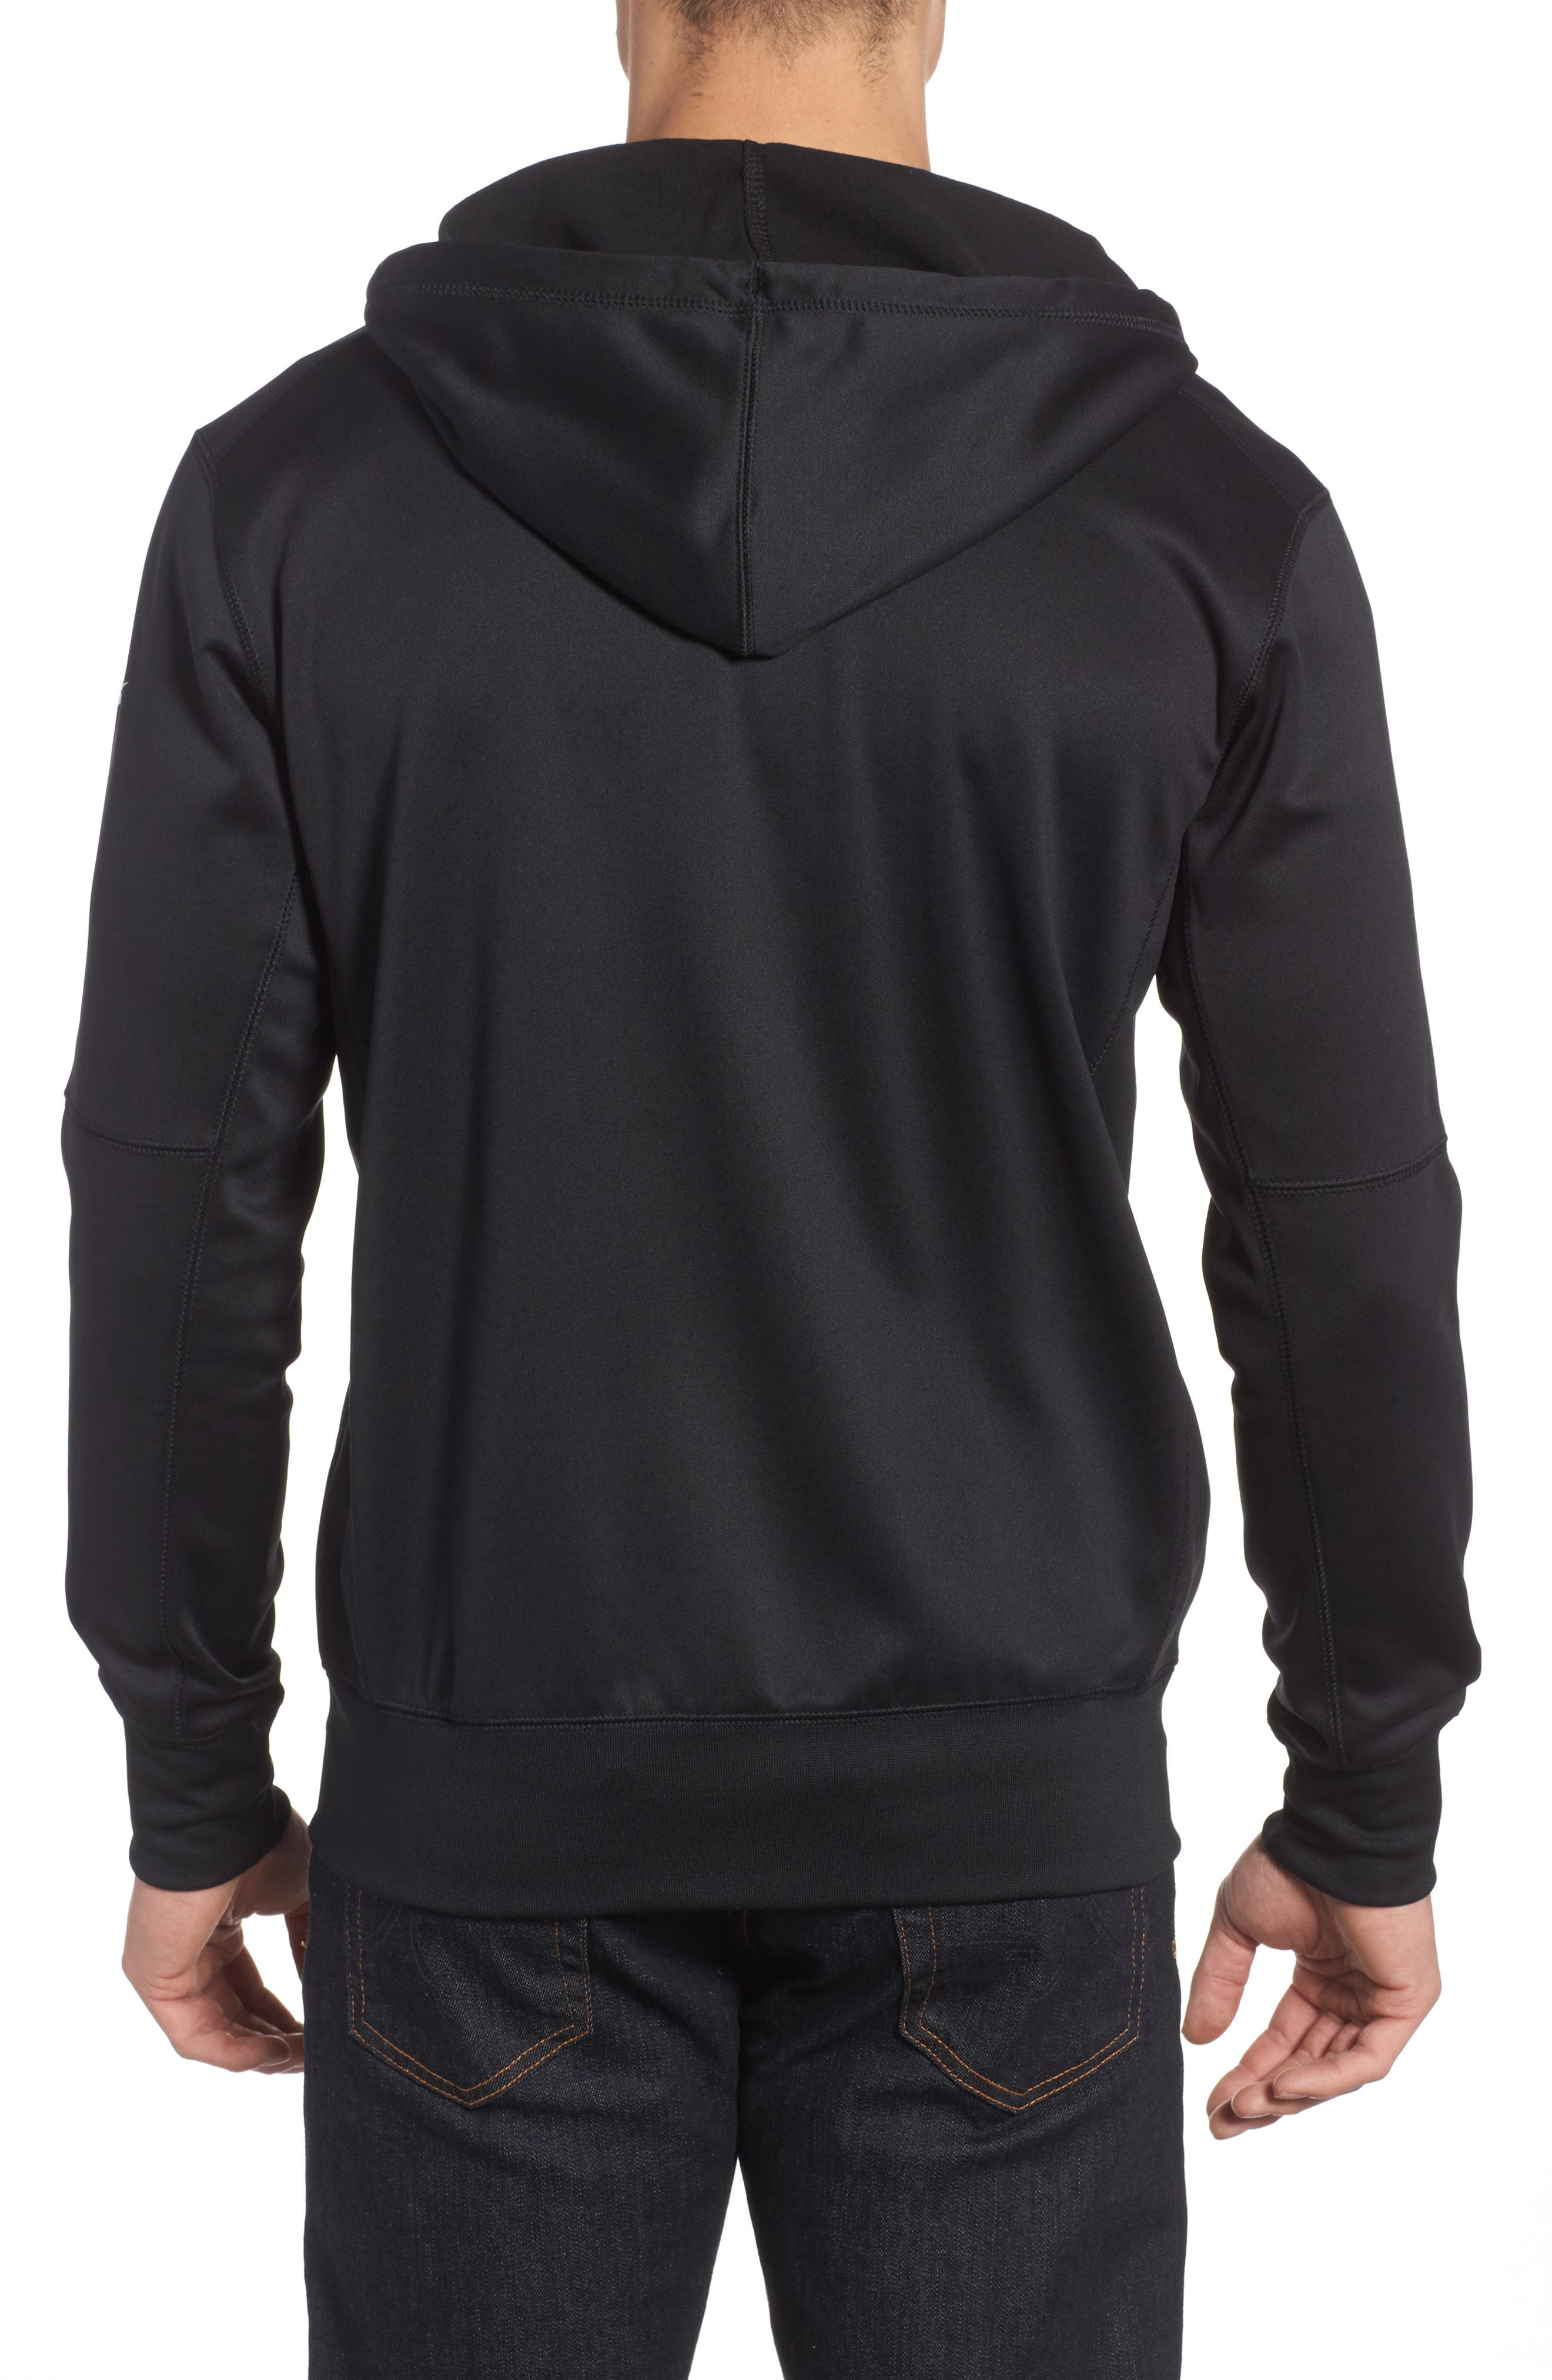 Therma-FIT NFL Graphic Zip Hoodie,                             Alternate thumbnail 8, color,